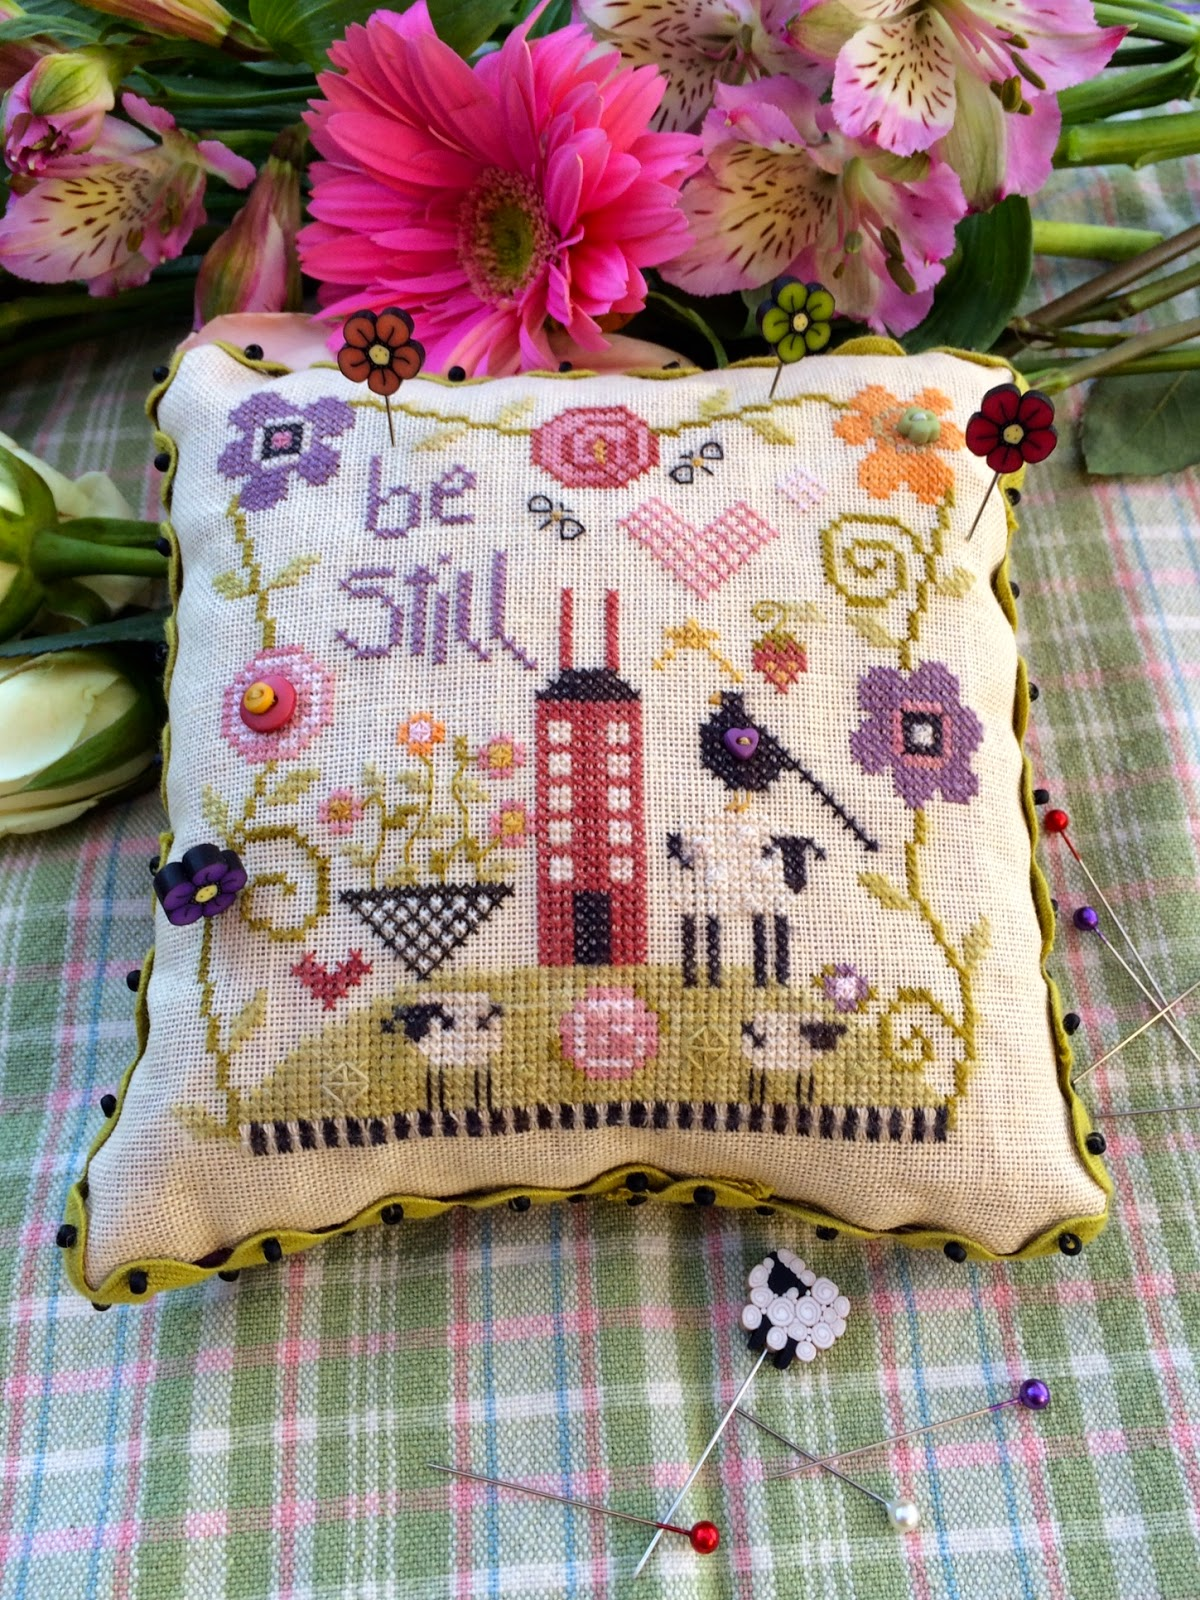 Shepherd's Bush - Be Still - Cross Stitch Kit-Shepherds Bush, Be Still, peaceful, home, Cross Stitch Kit